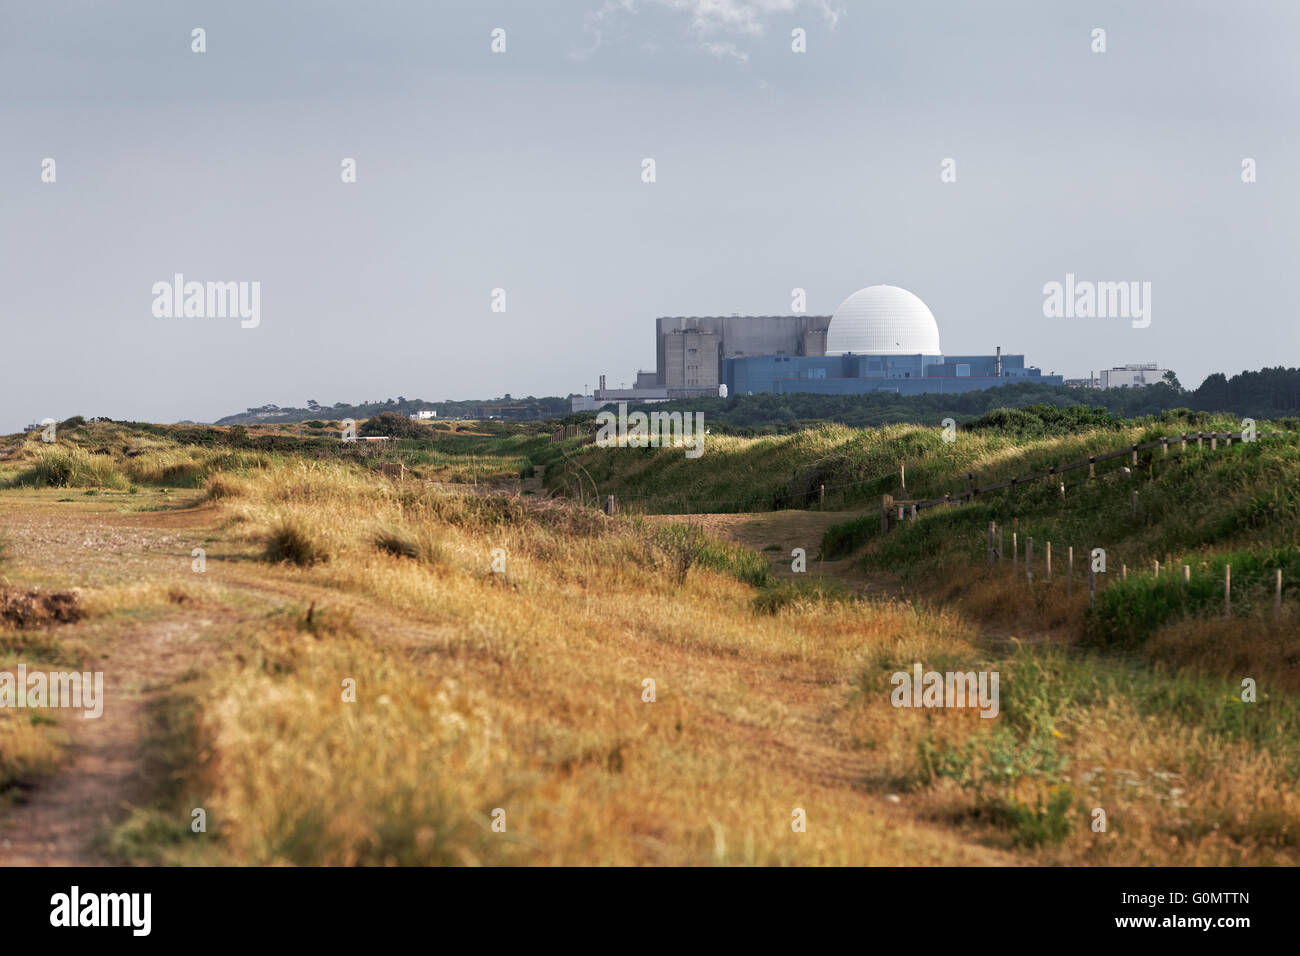 Sizewell A and Sizewell B nuclear power stations - Stock Image